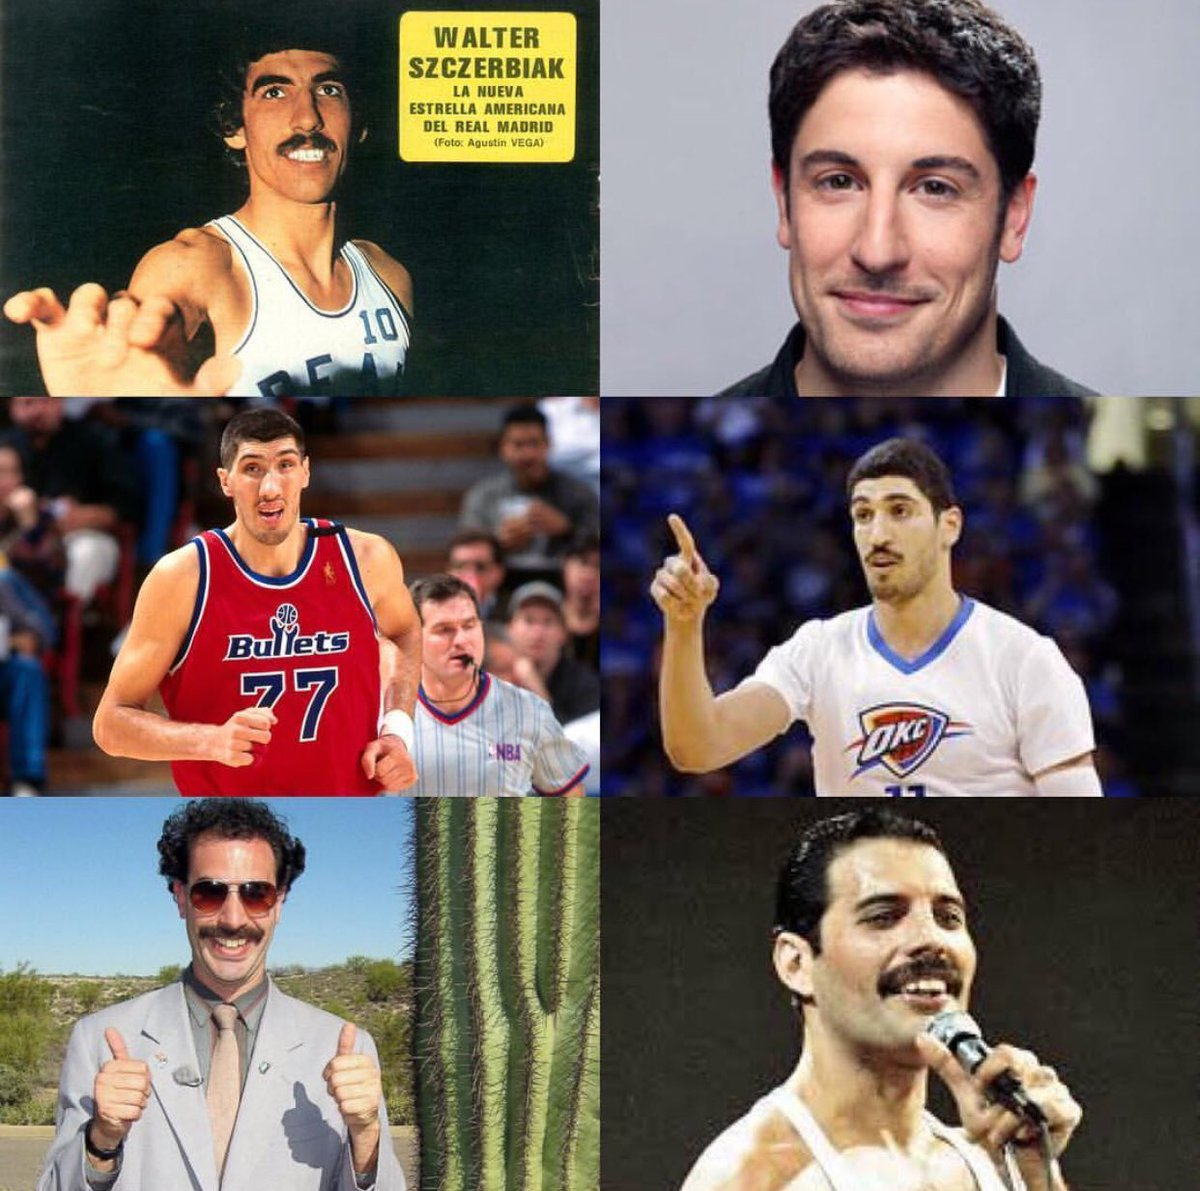 RT @Enes_Kanter: My long lost brothers 😂  #NationalLookAlikeDay   (Pick your favorite) 🤔 https://t.co/zBSnoOefB7